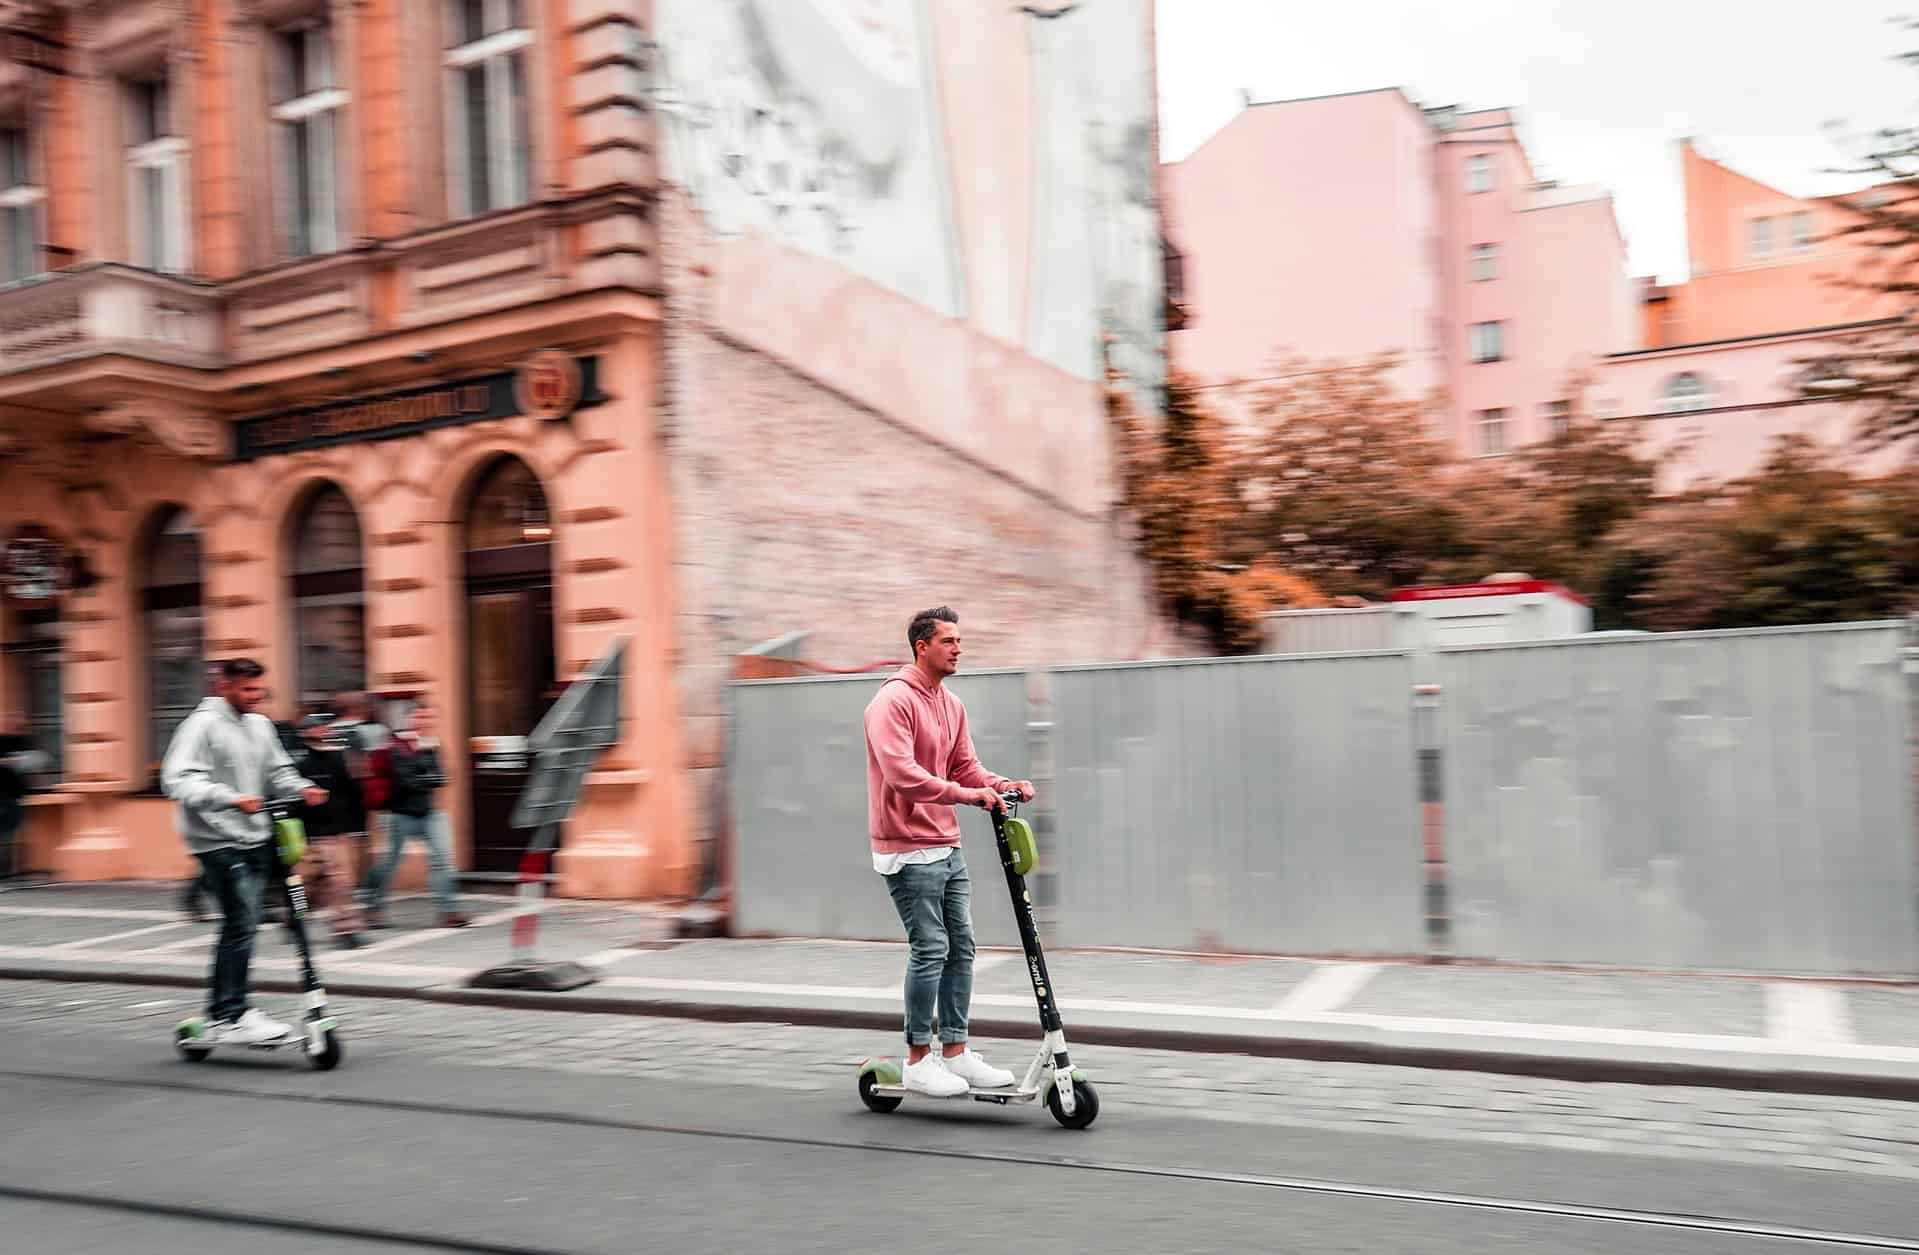 Electric scooters are good personal vehicles for city, commuting, and recreational use